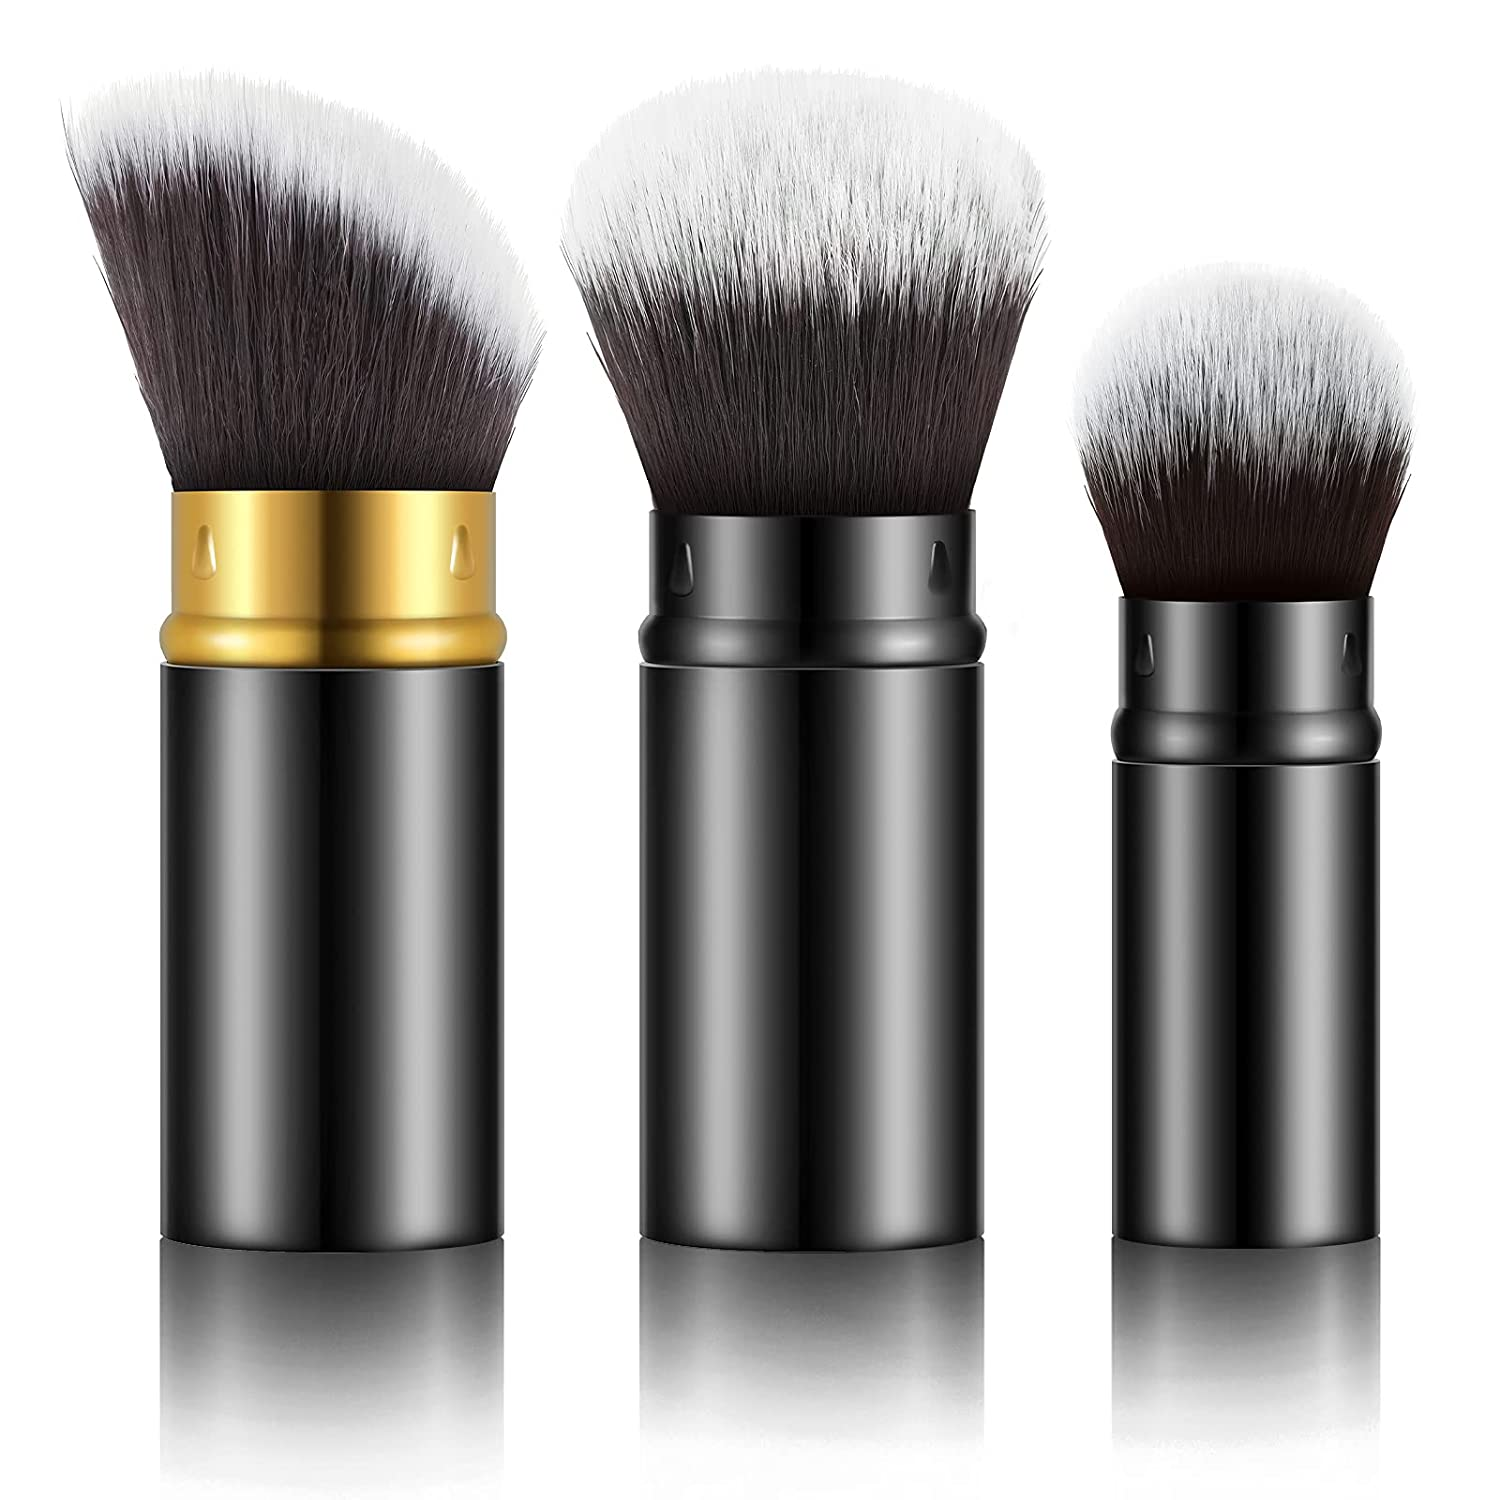 Boston Mall Max 58% OFF 3 Pieces Retractable and Portable Foundati Brushes Travel Makeup